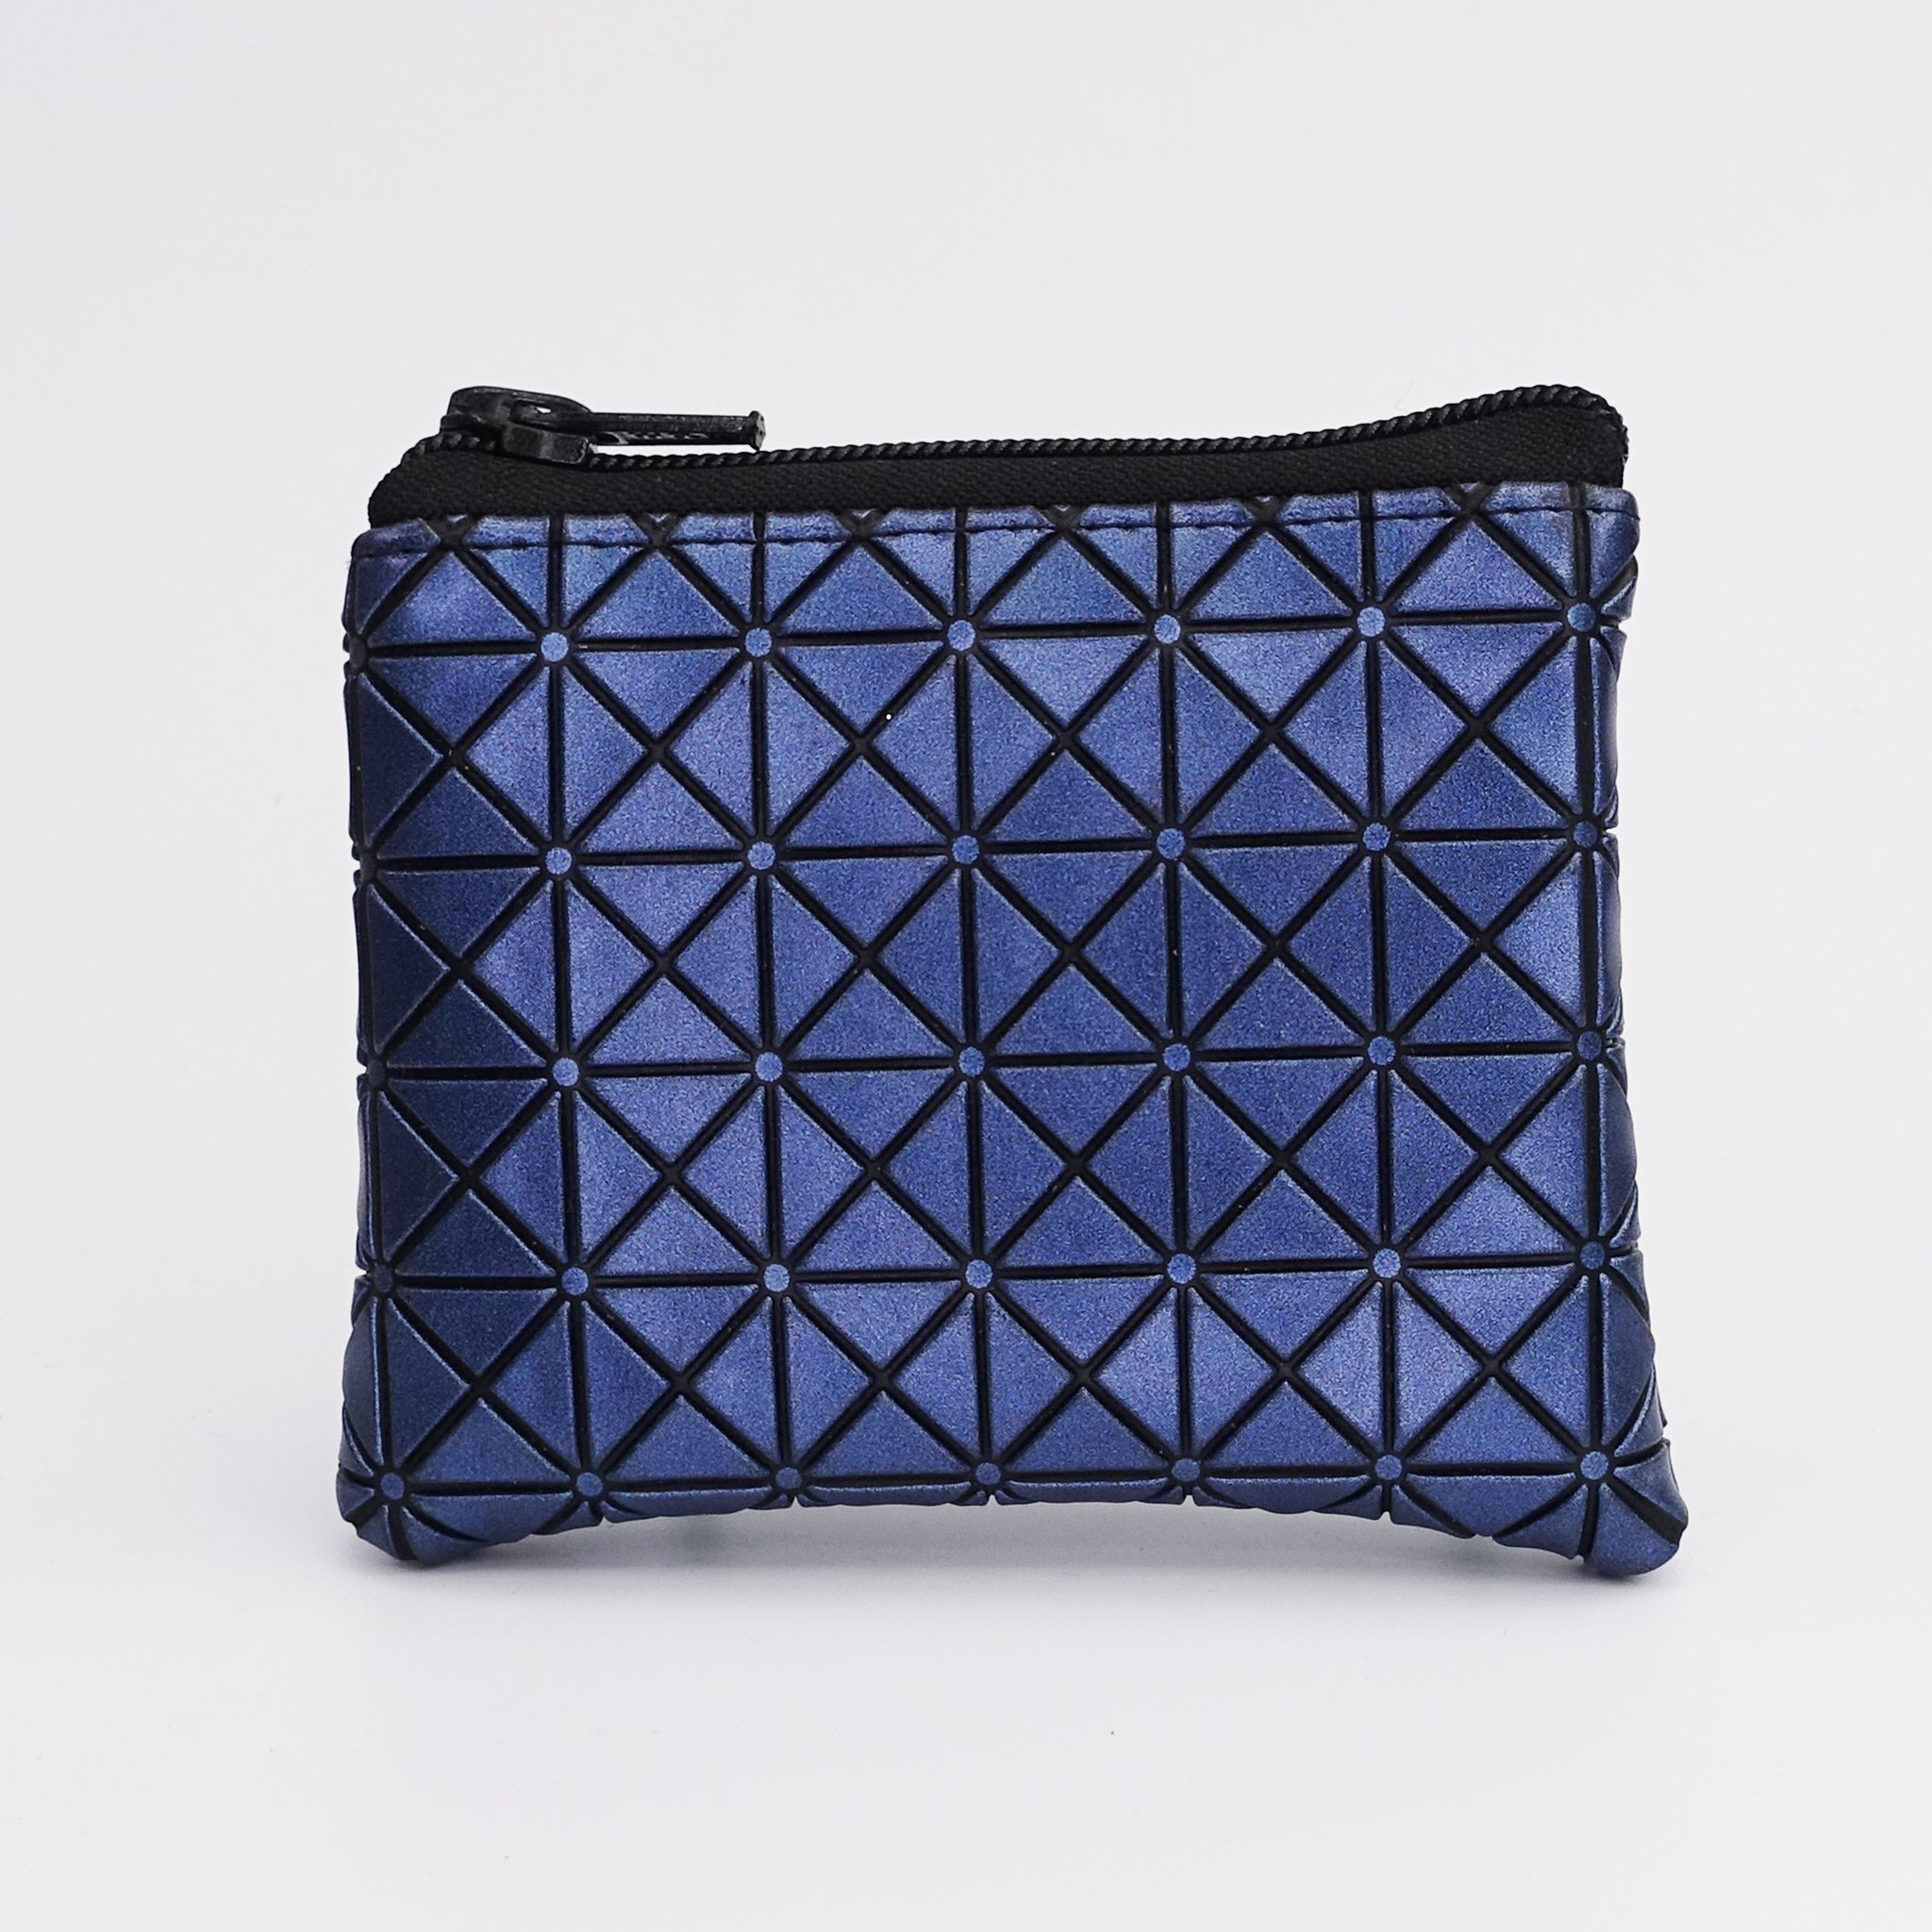 Porte-monnaie végan Japan bleu, zip nylon